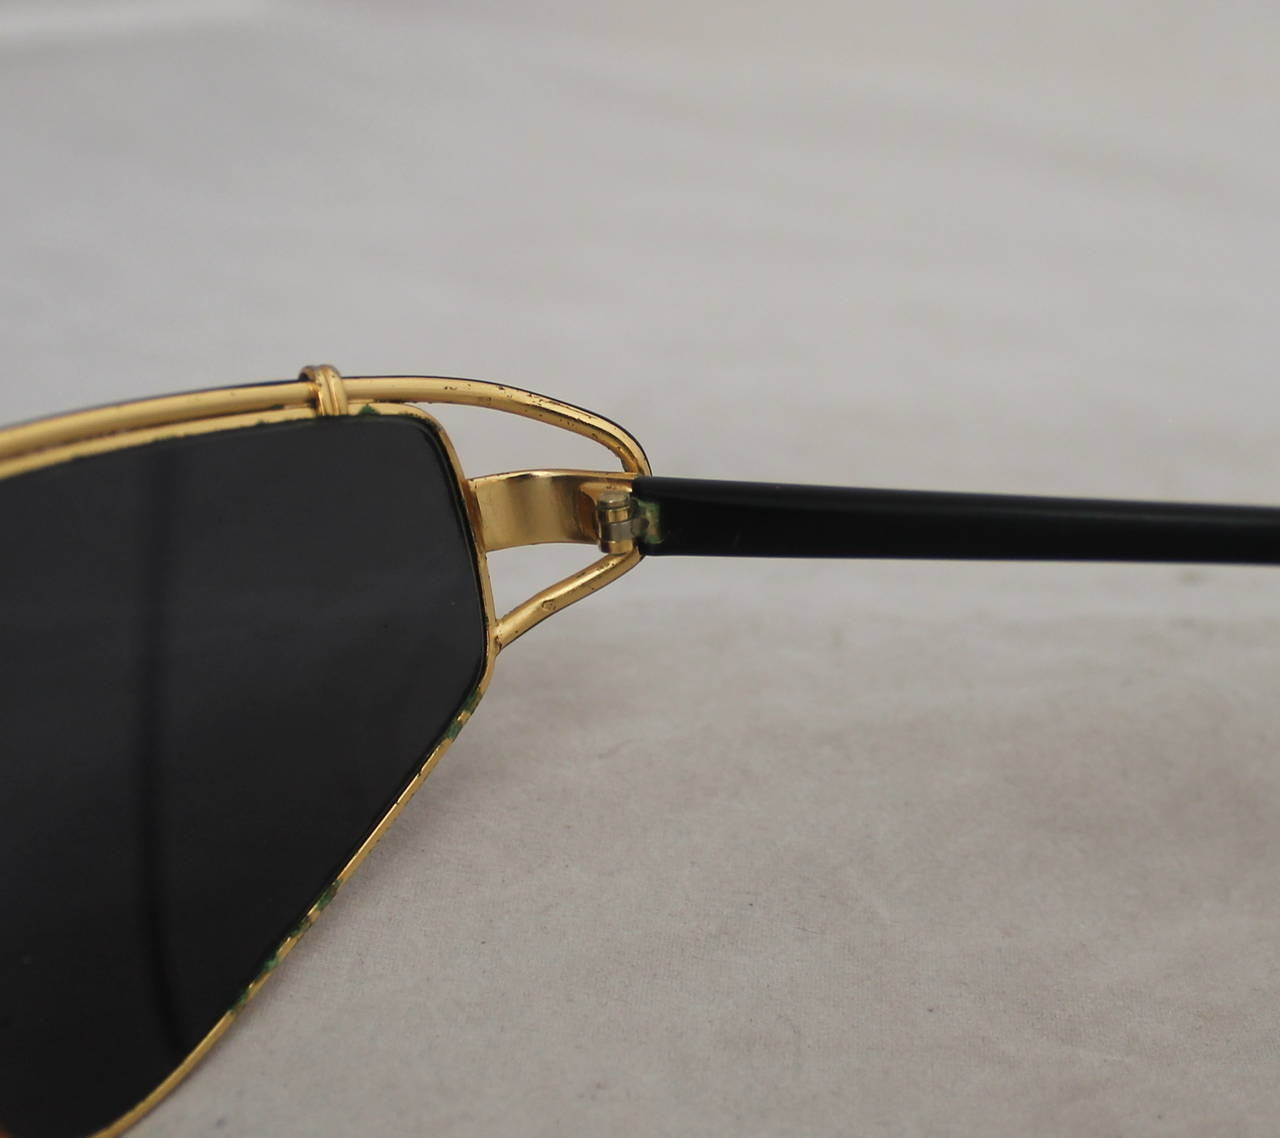 Versace 1980's Vintage Black & Gold Geometric Aviator Sunglasses 5